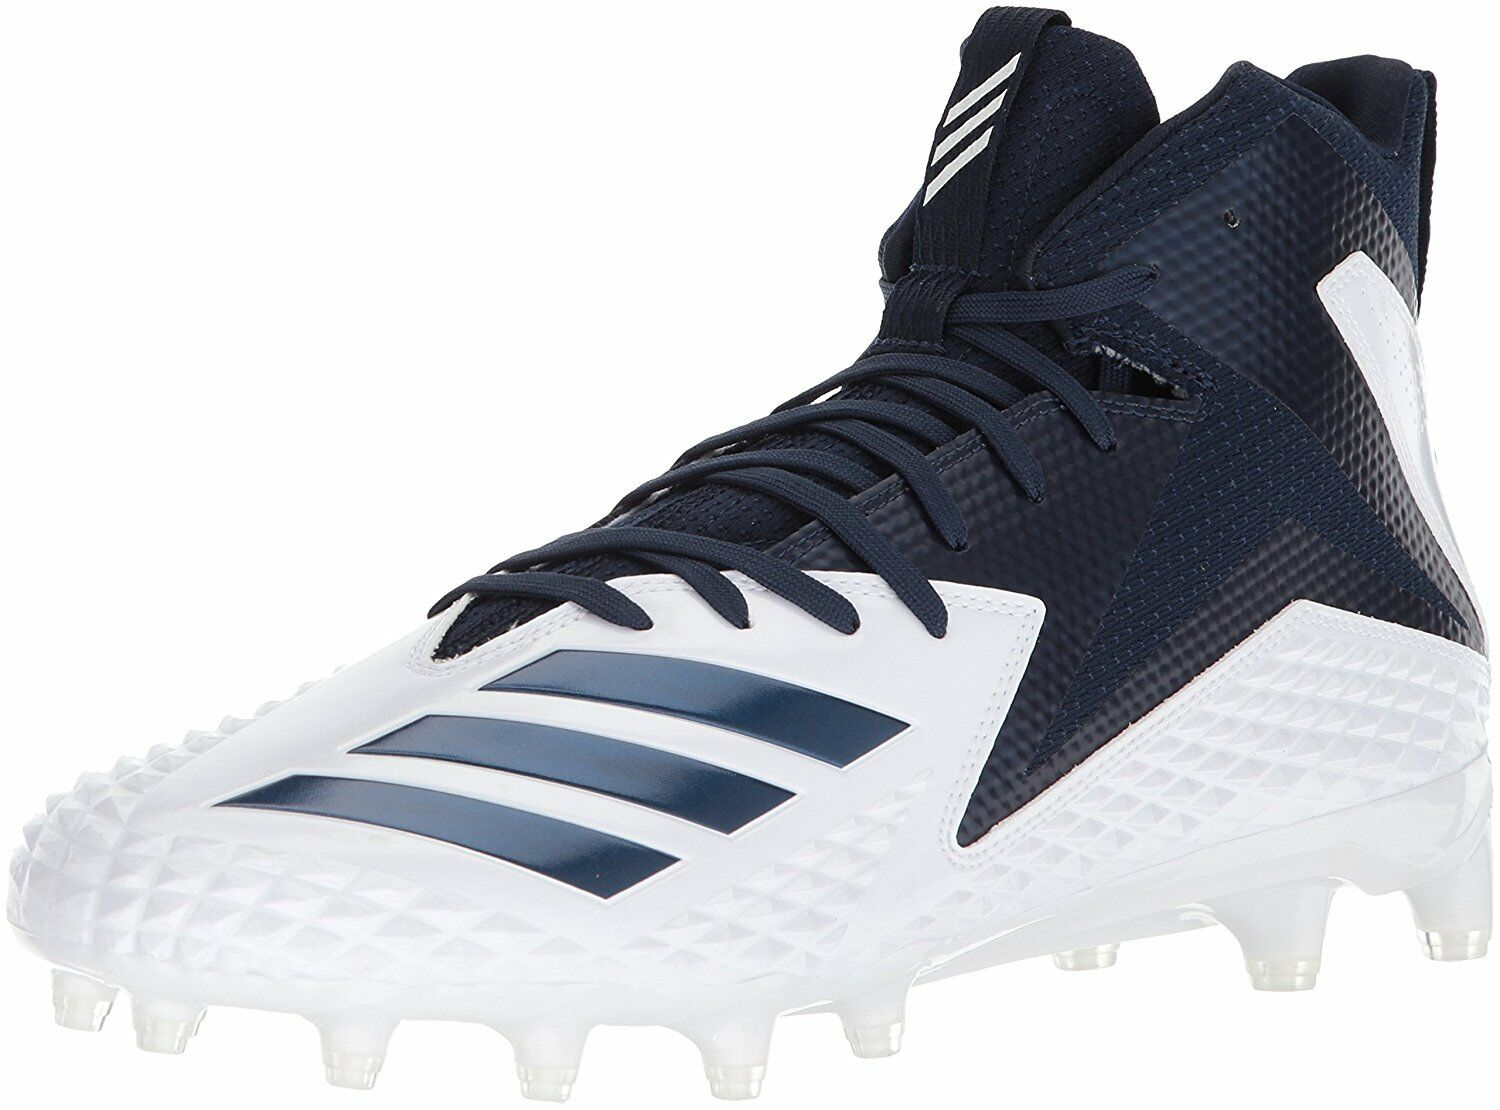 Adidas Men's Freak X Carbon Mid Football shoes